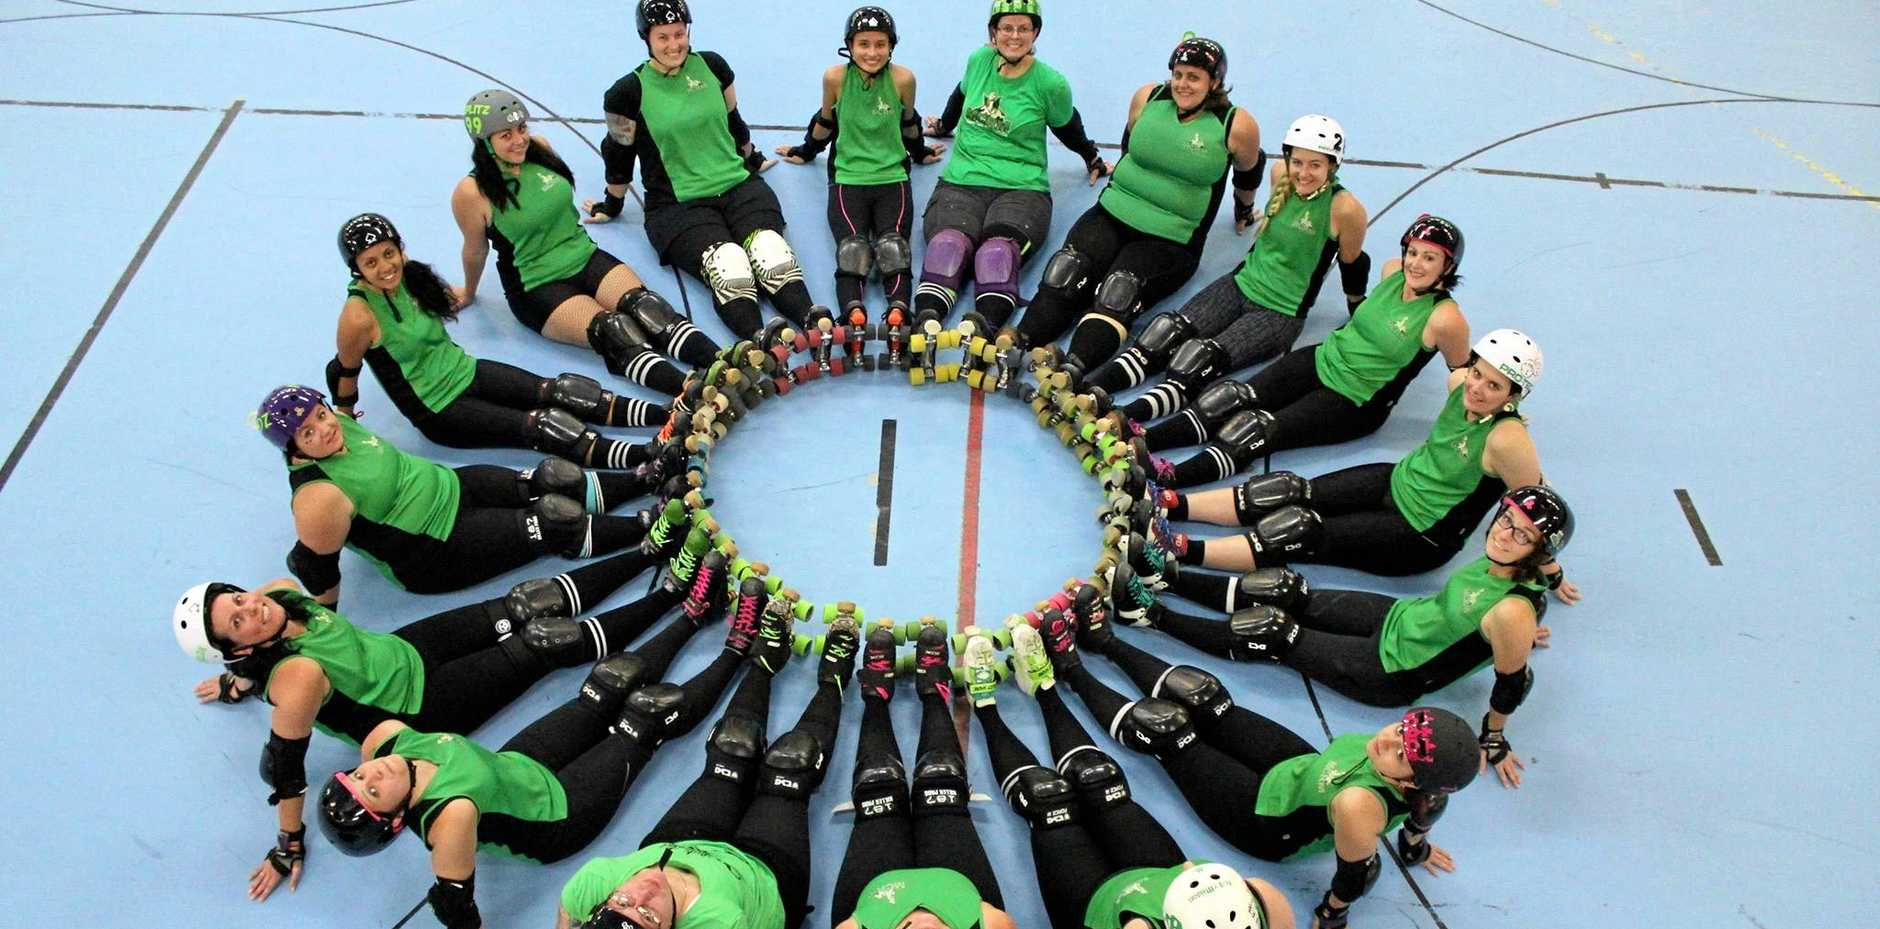 ON A ROLL: Mackay City Roller Maidens will take on Townsville's Top Gun Rollers this weekend.